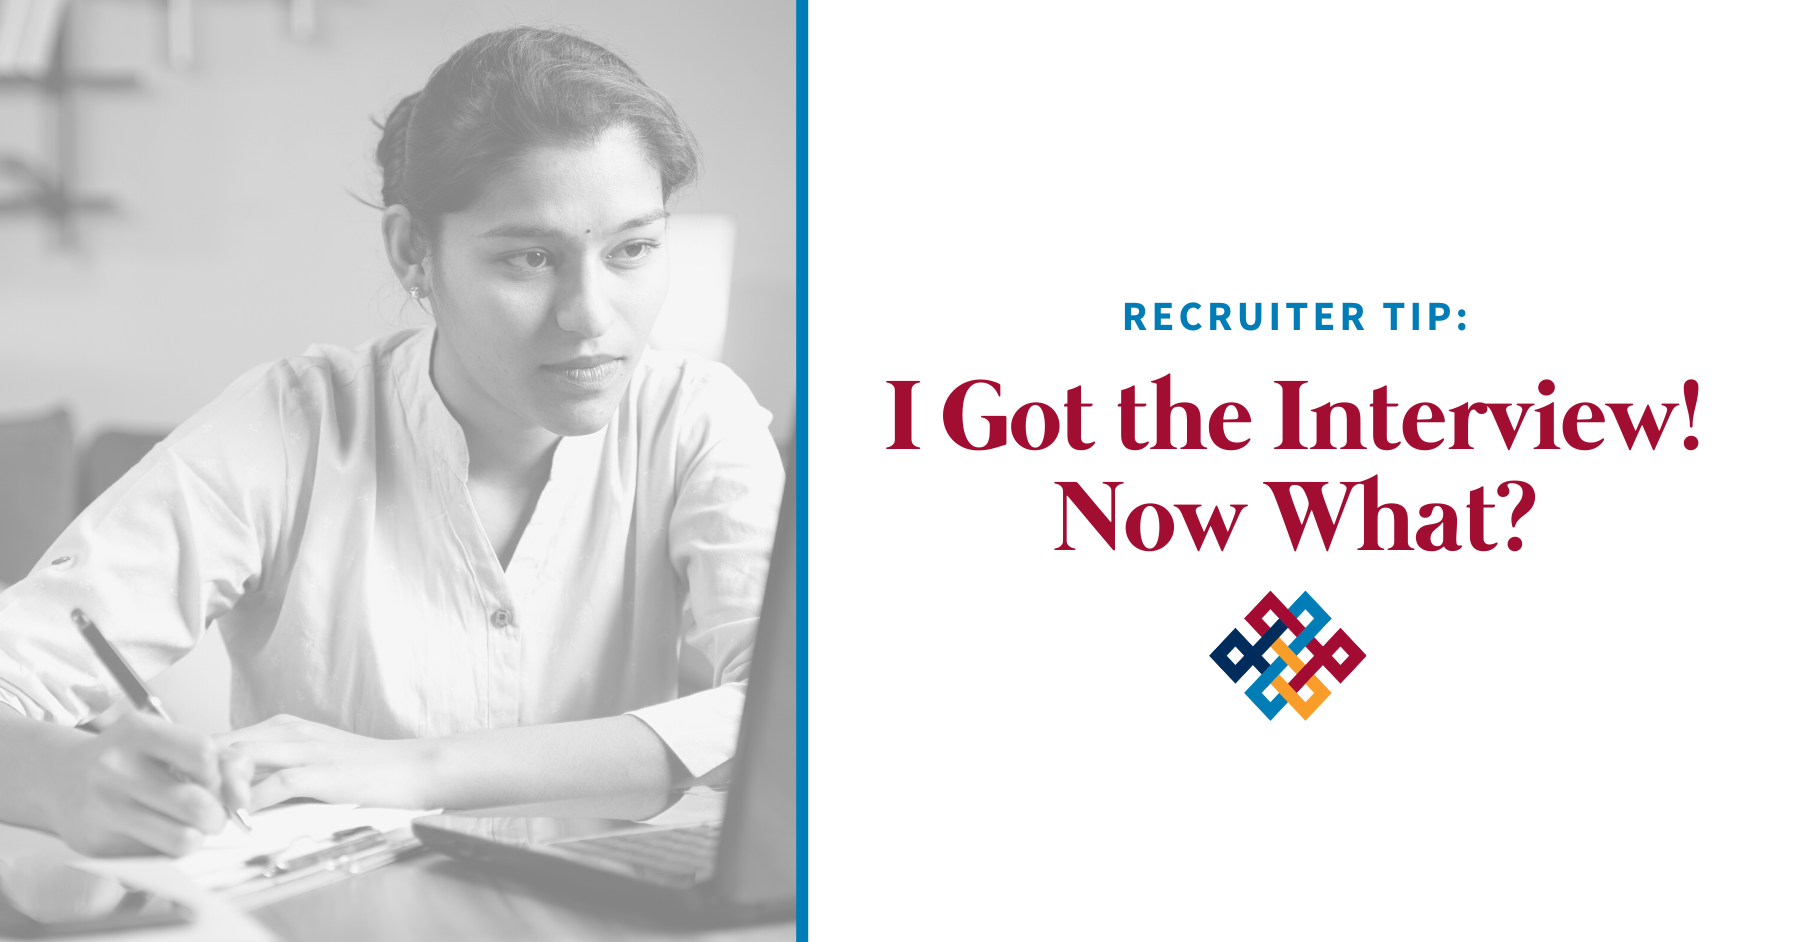 Recruiter Tip: I Got the Interview! Now What?